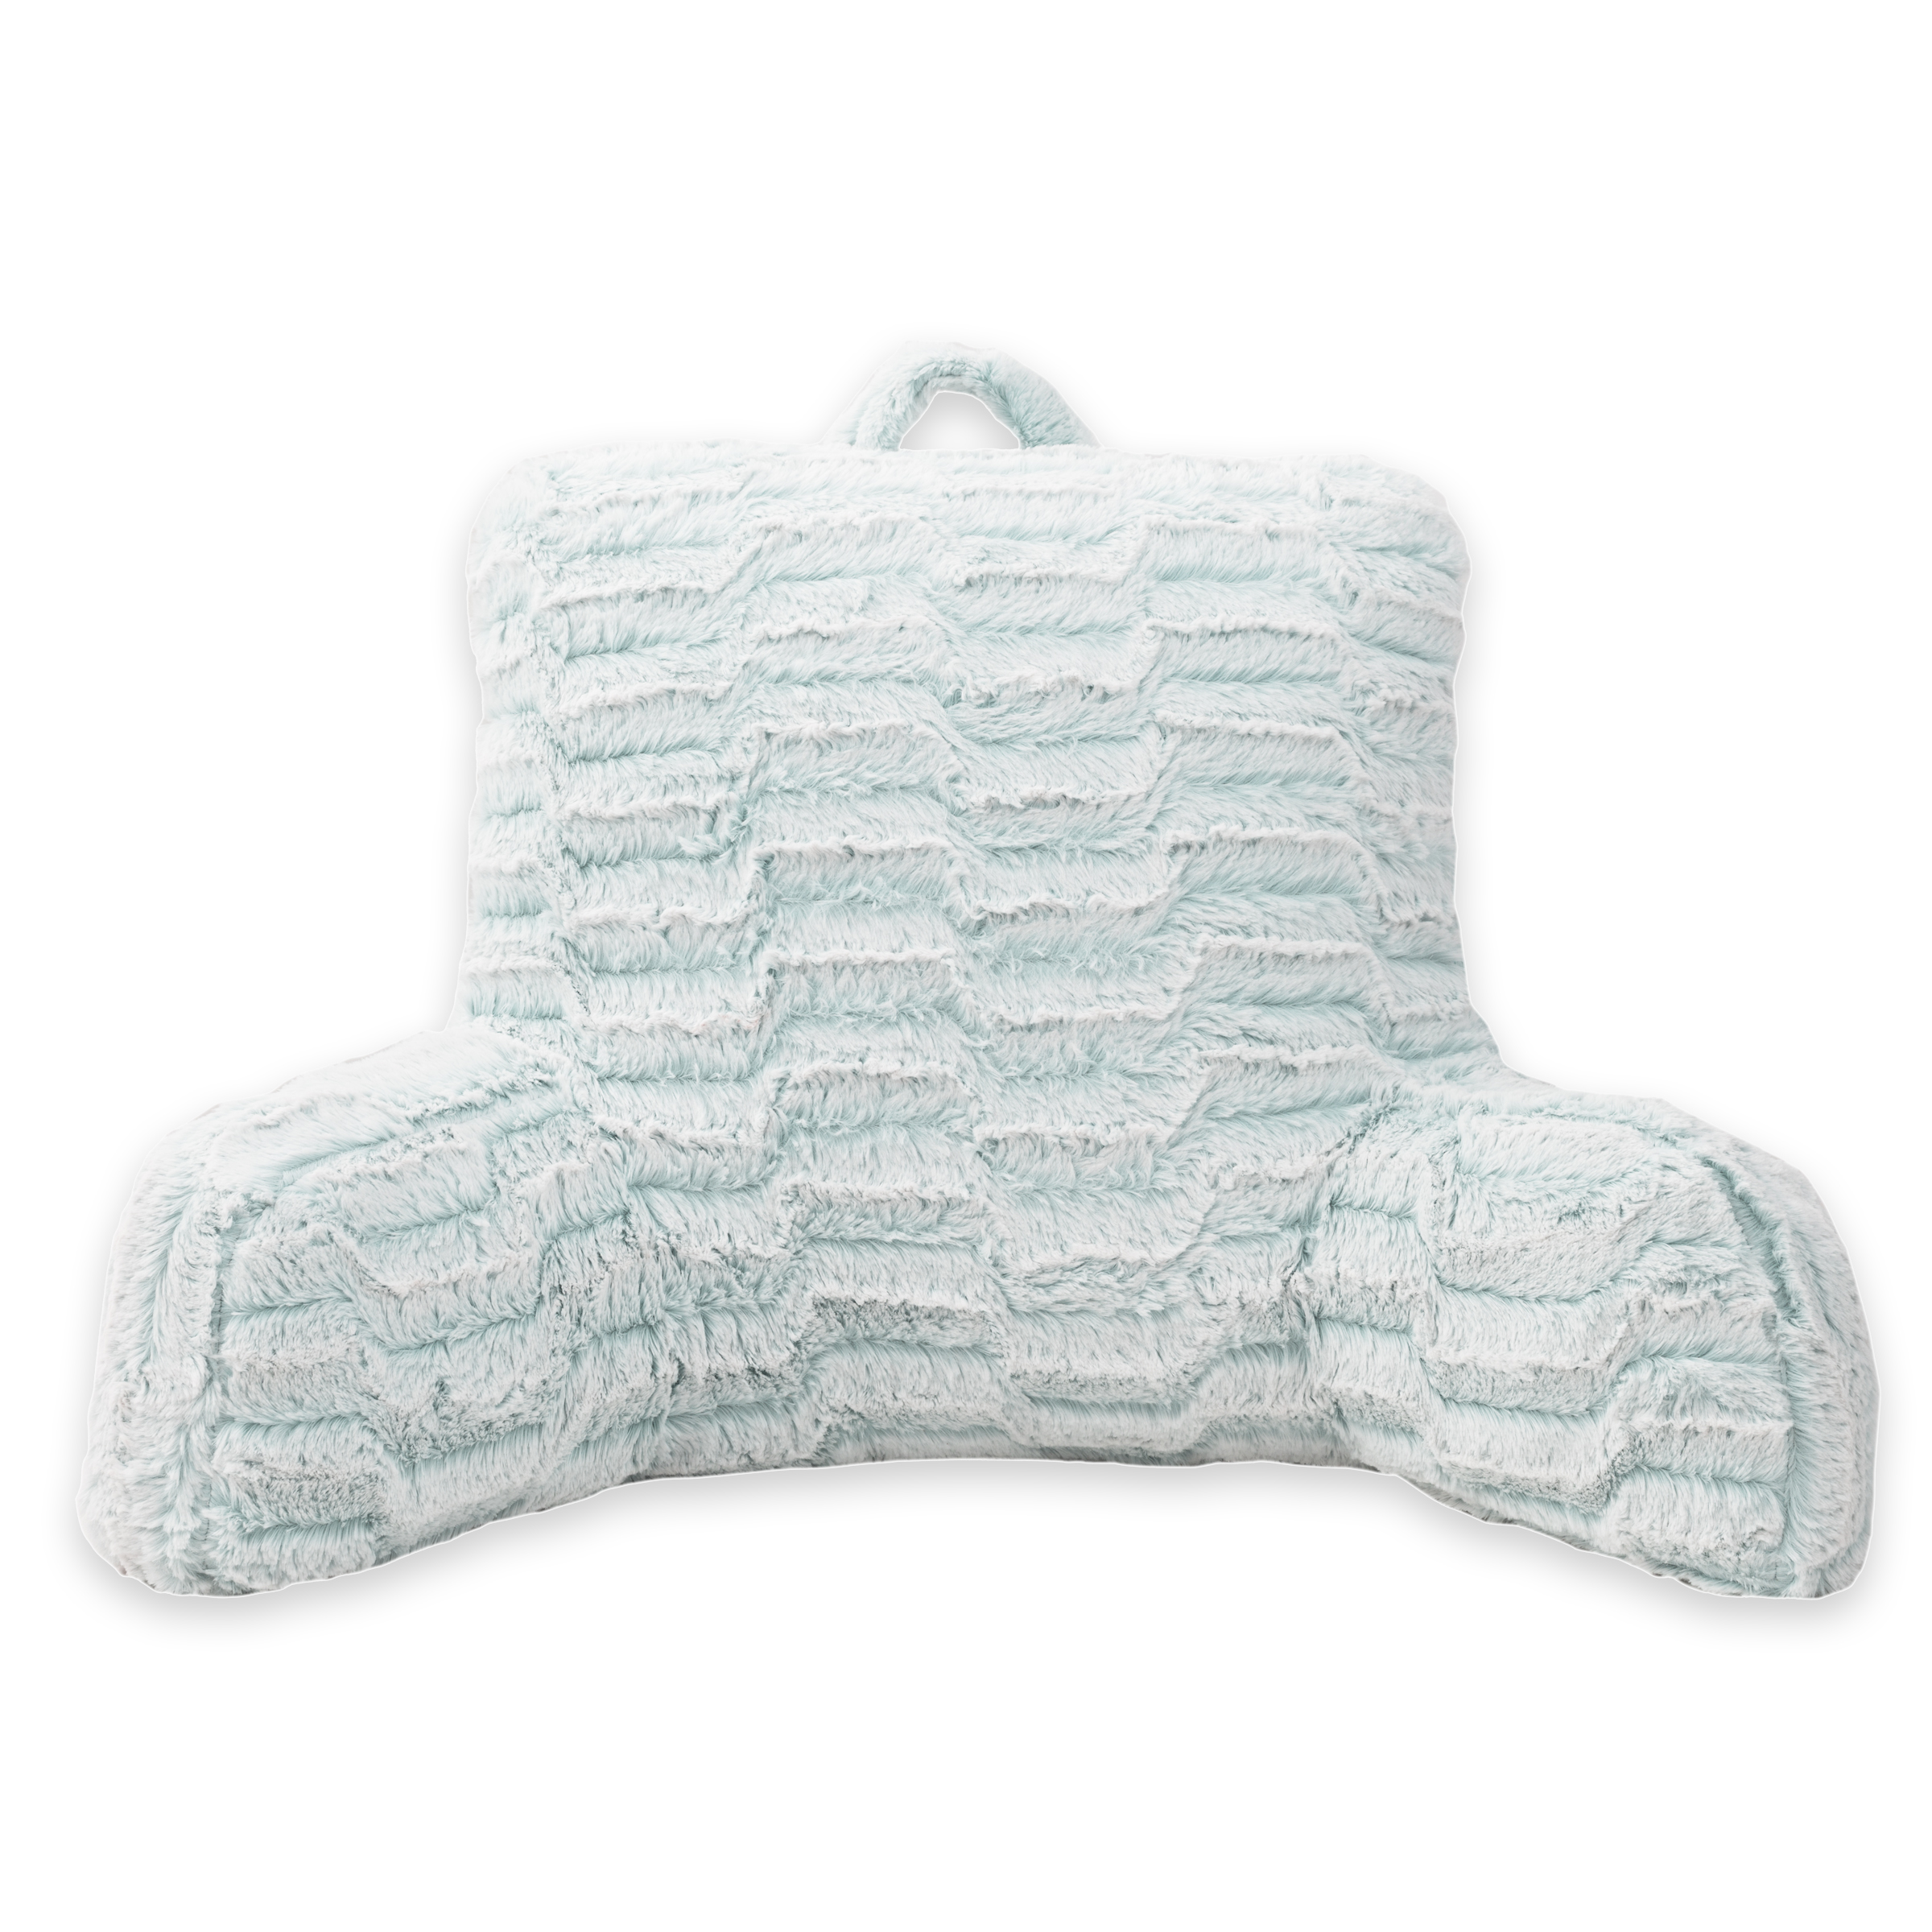 Arlee Nevada Faux Fur Bedrest Backrest Pillow Lounger, Teal Cloud Blue